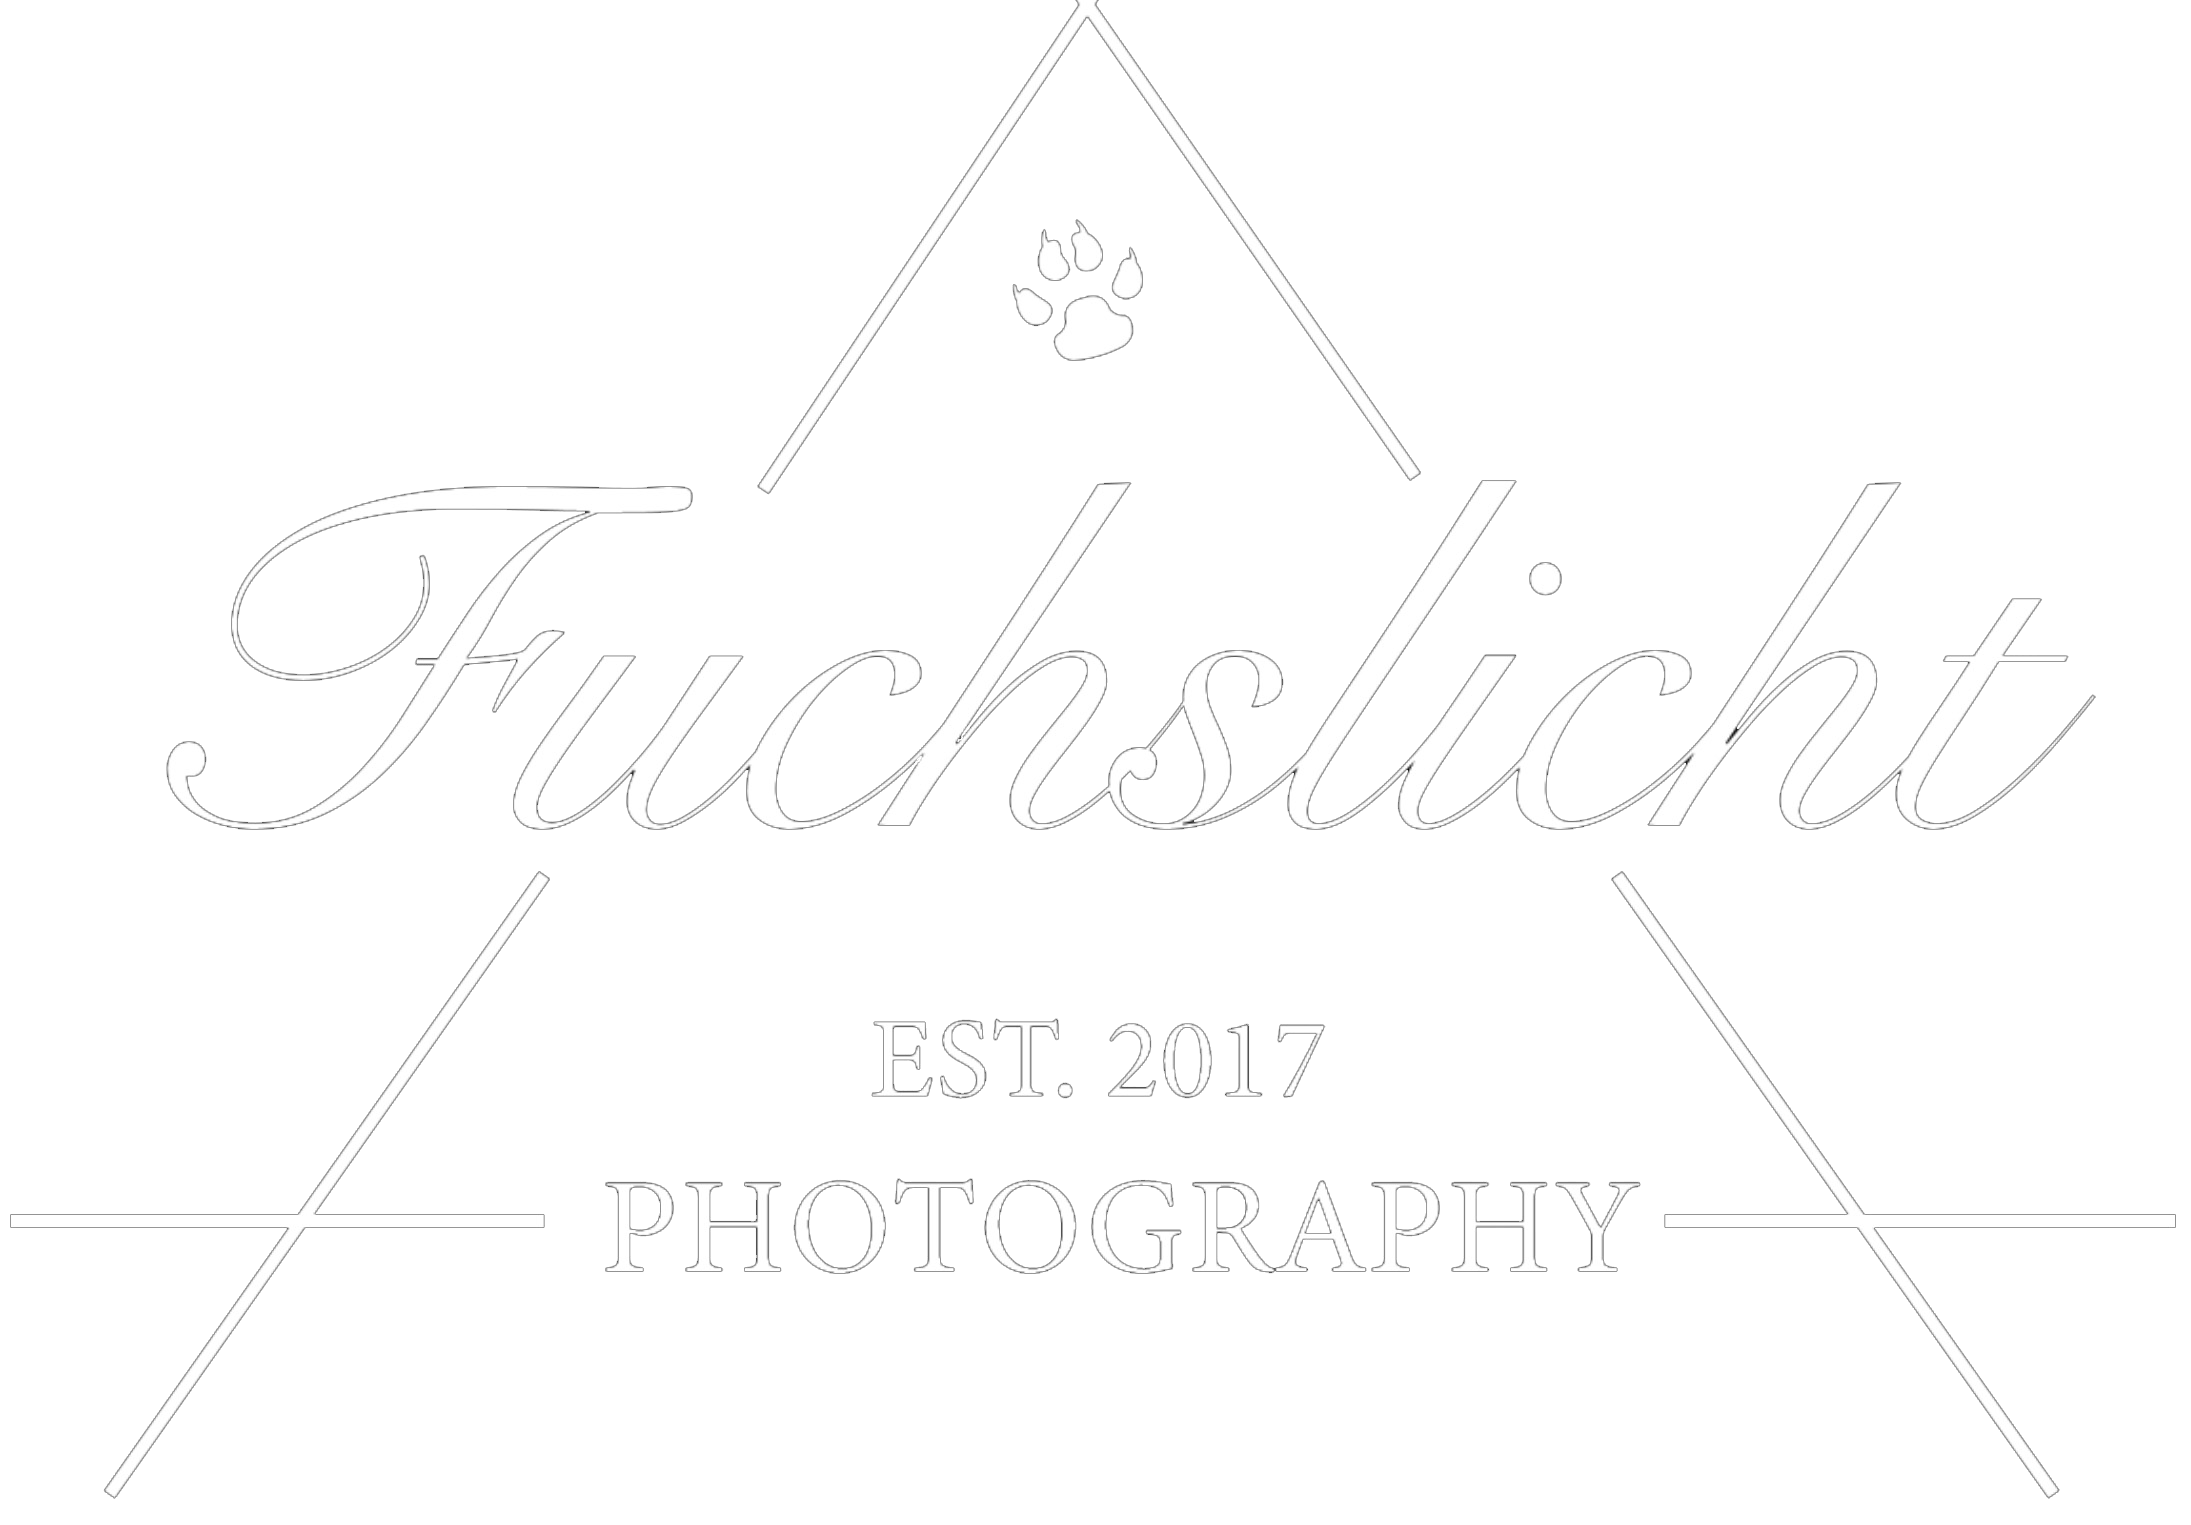 Fuchslicht Photography